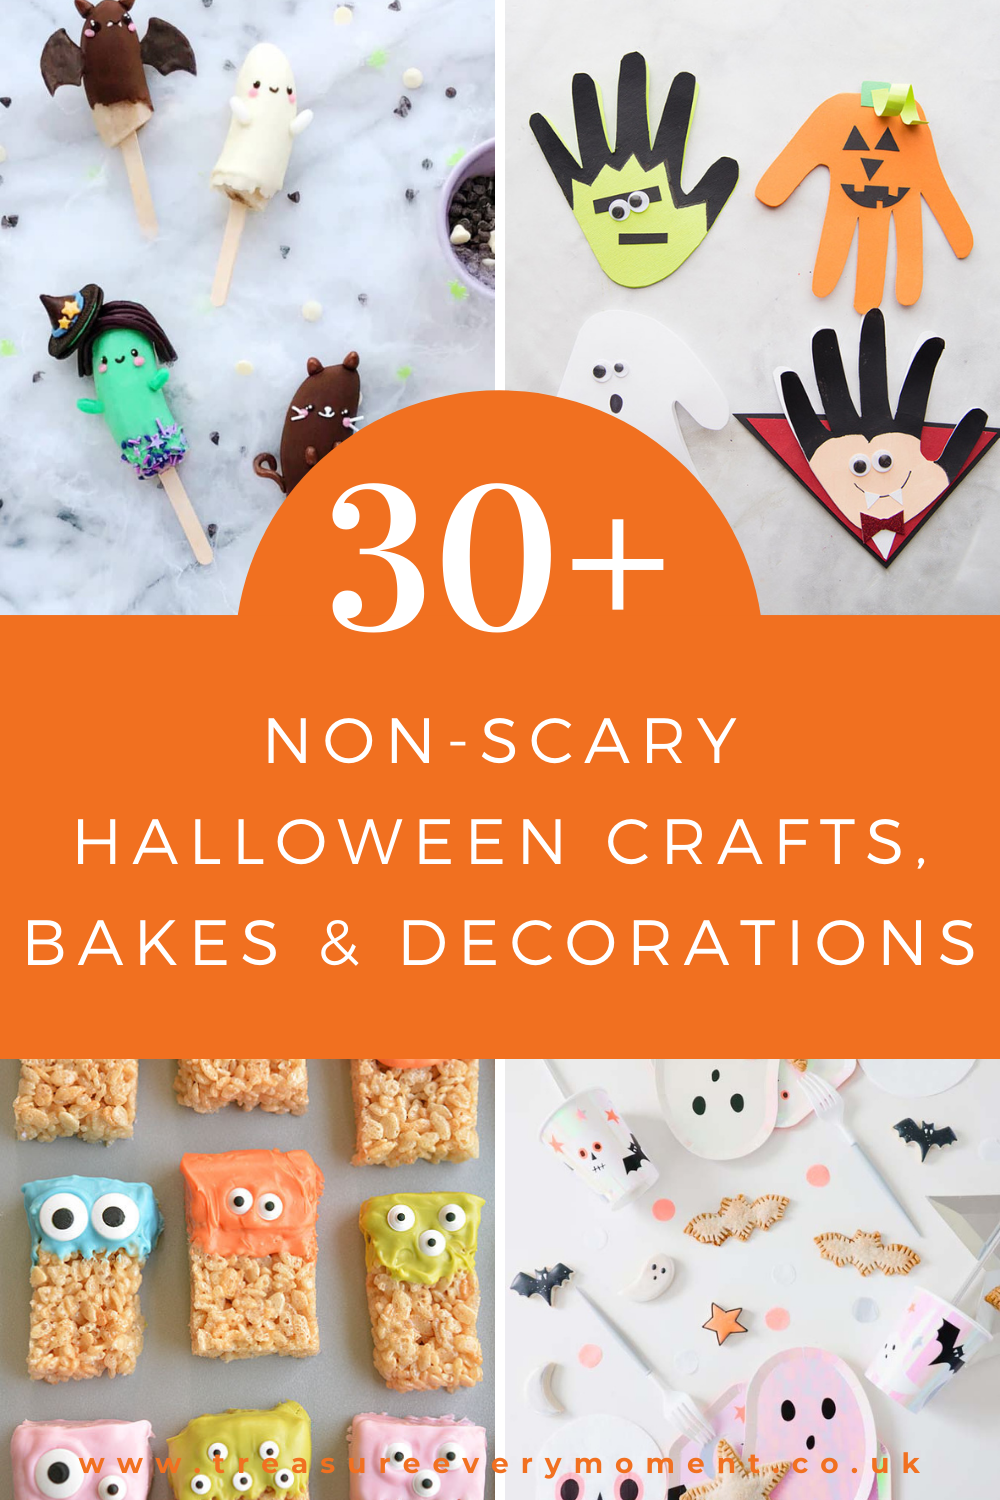 30+ Non-Scary Halloween Crafts, Bakes and Activities